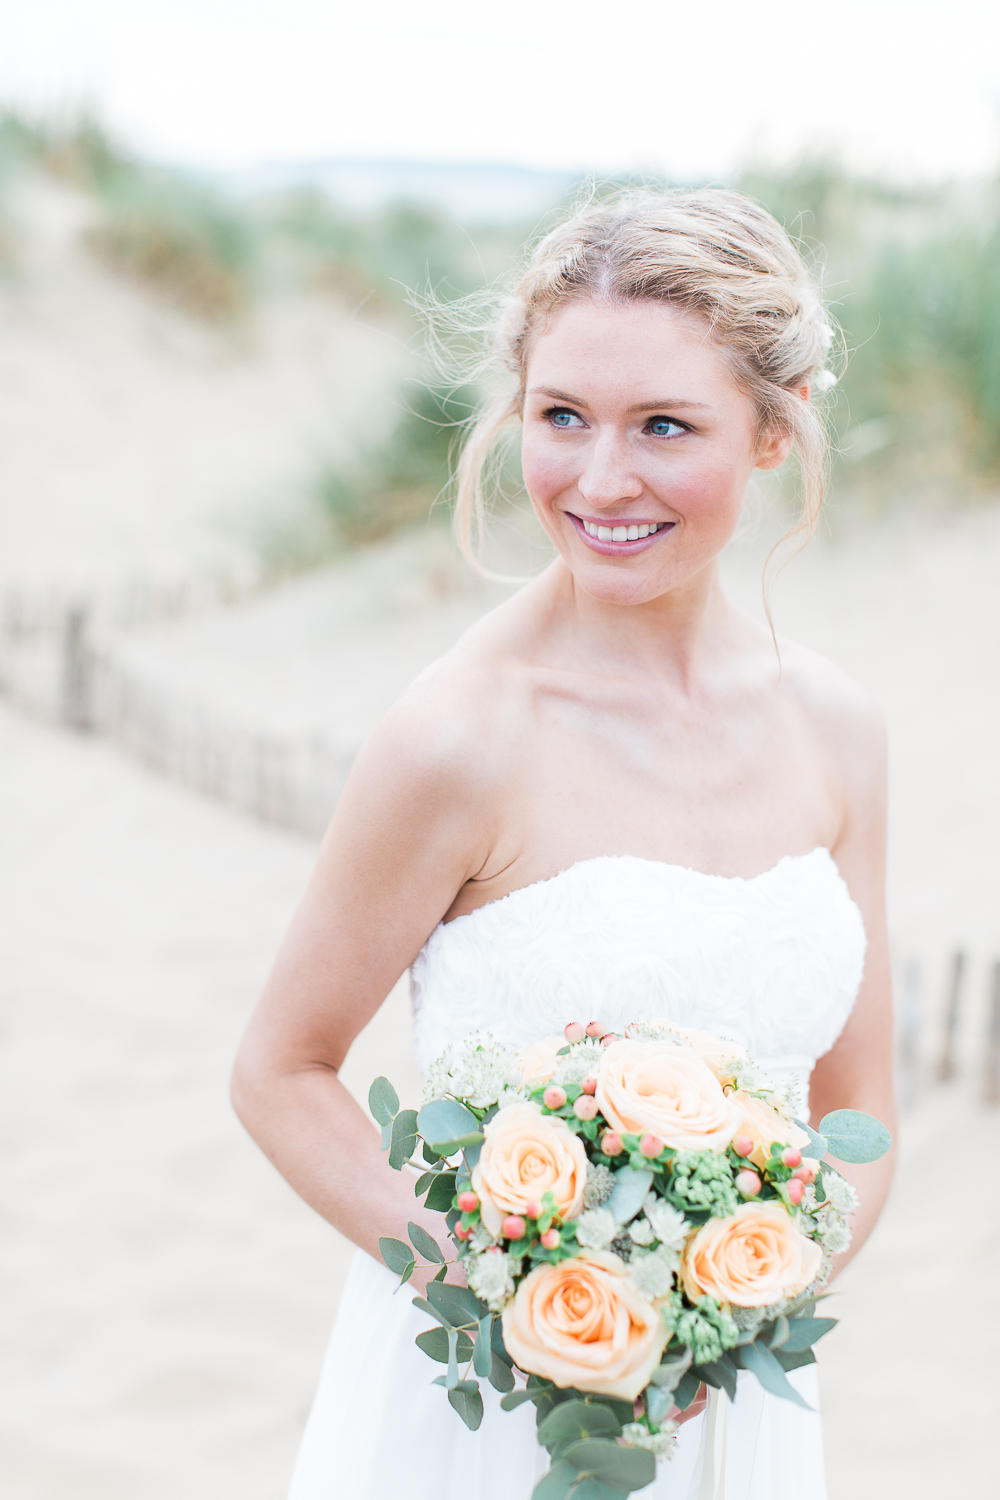 Fishtail Braid Bridal Hair For A Beach Inspiration Shoot At Camber Sands